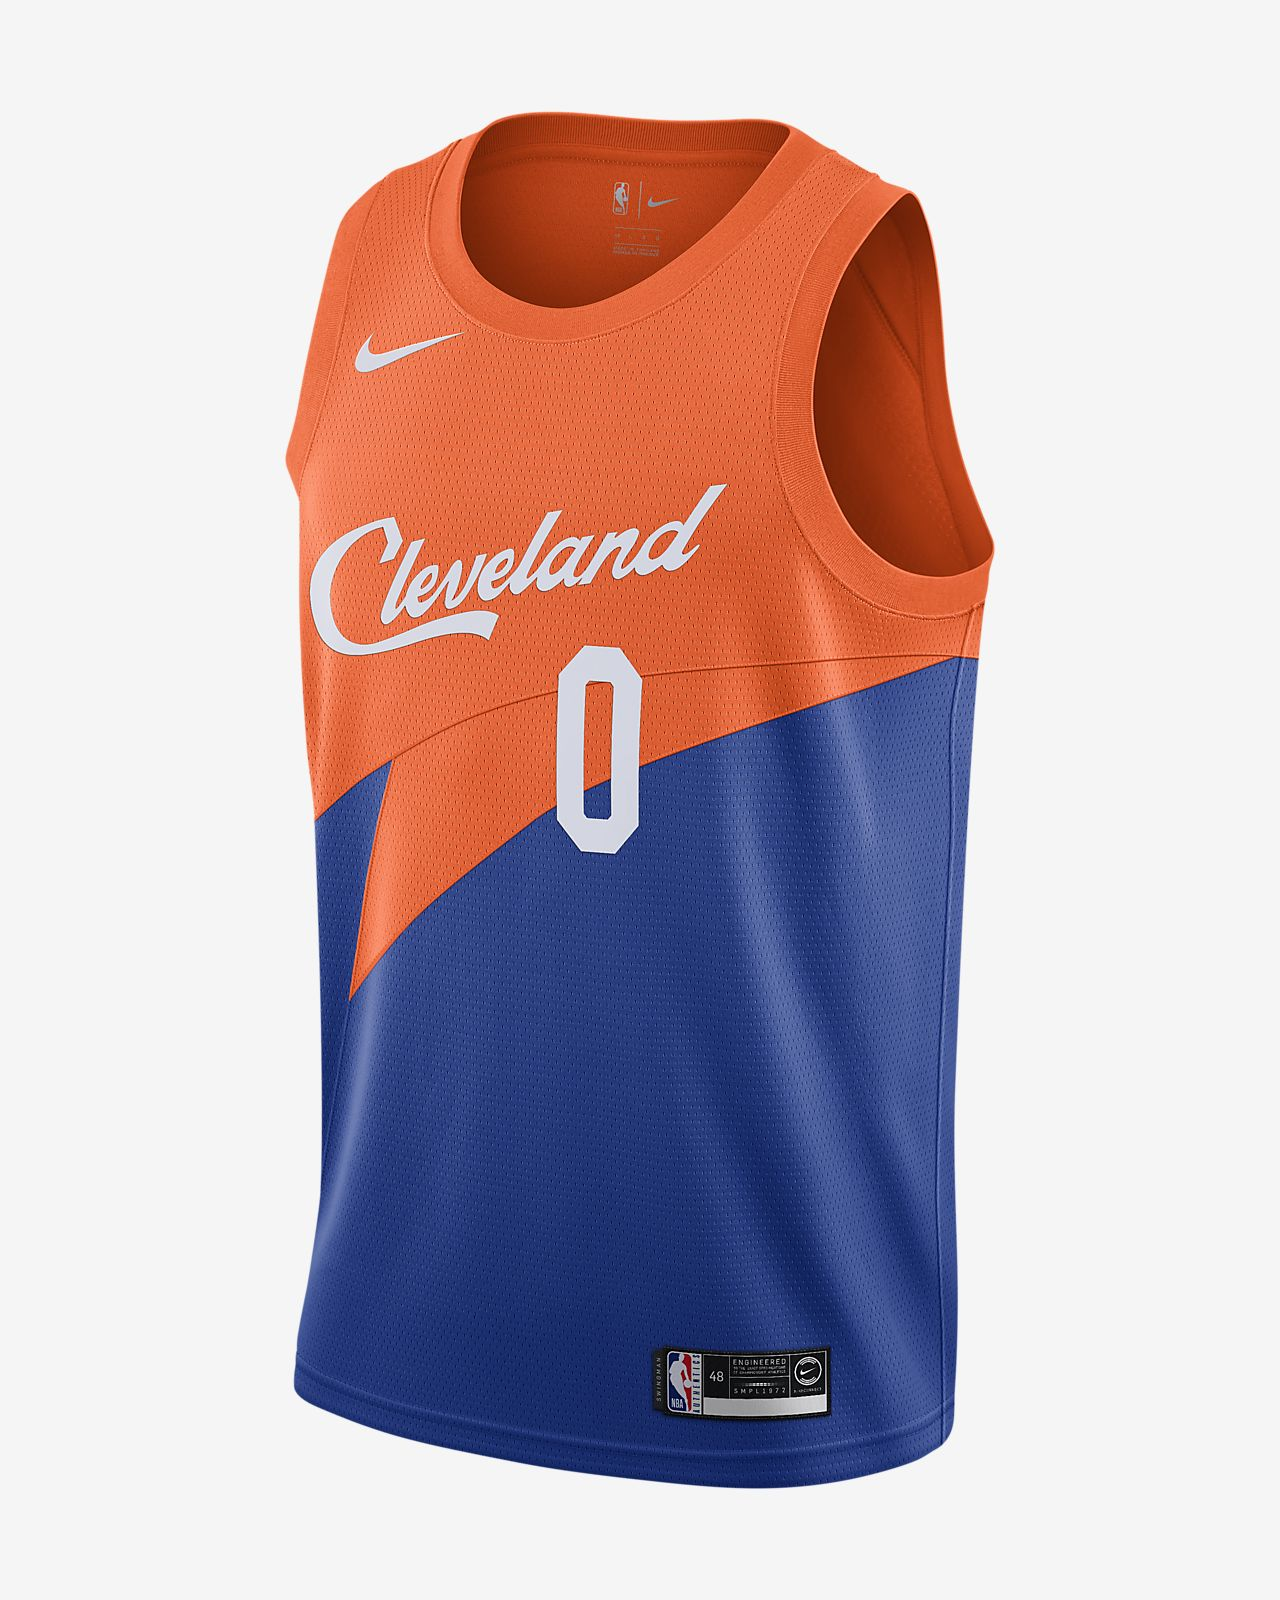 ae7d83ac35f Men's Nike NBA Connected Jersey. Kevin Love City Edition Swingman  (Cleveland Cavaliers)